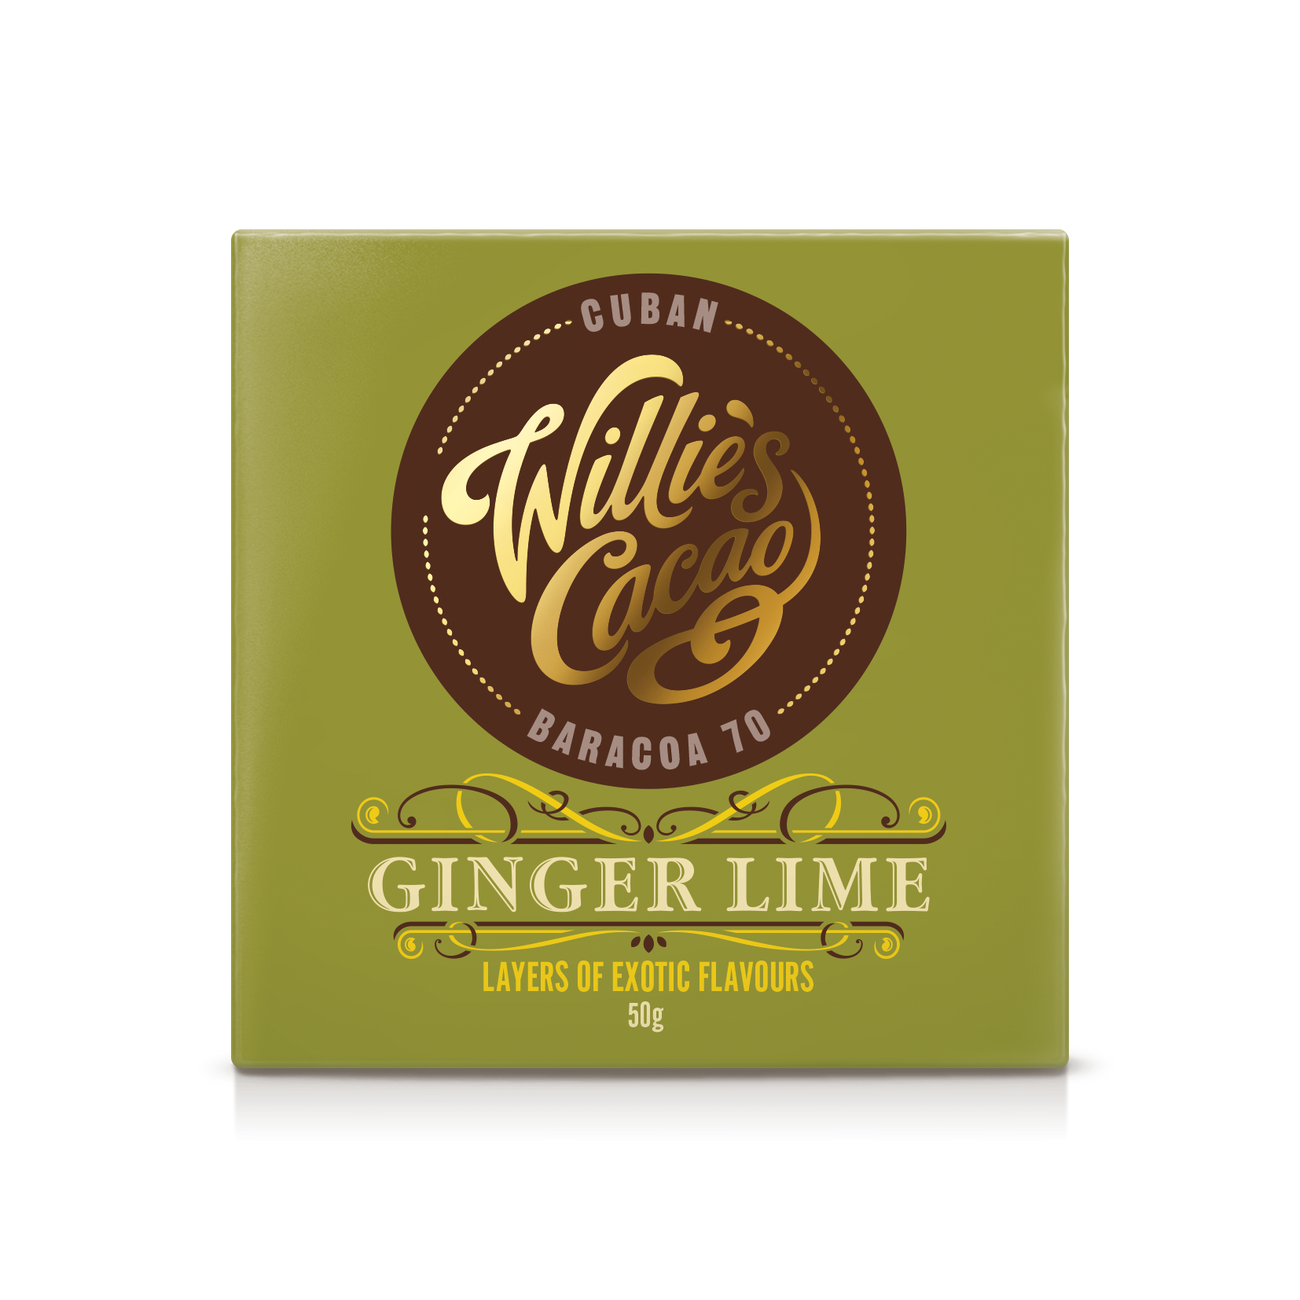 Willie's Cacao Ginger Lime Cuban Baracoa 70